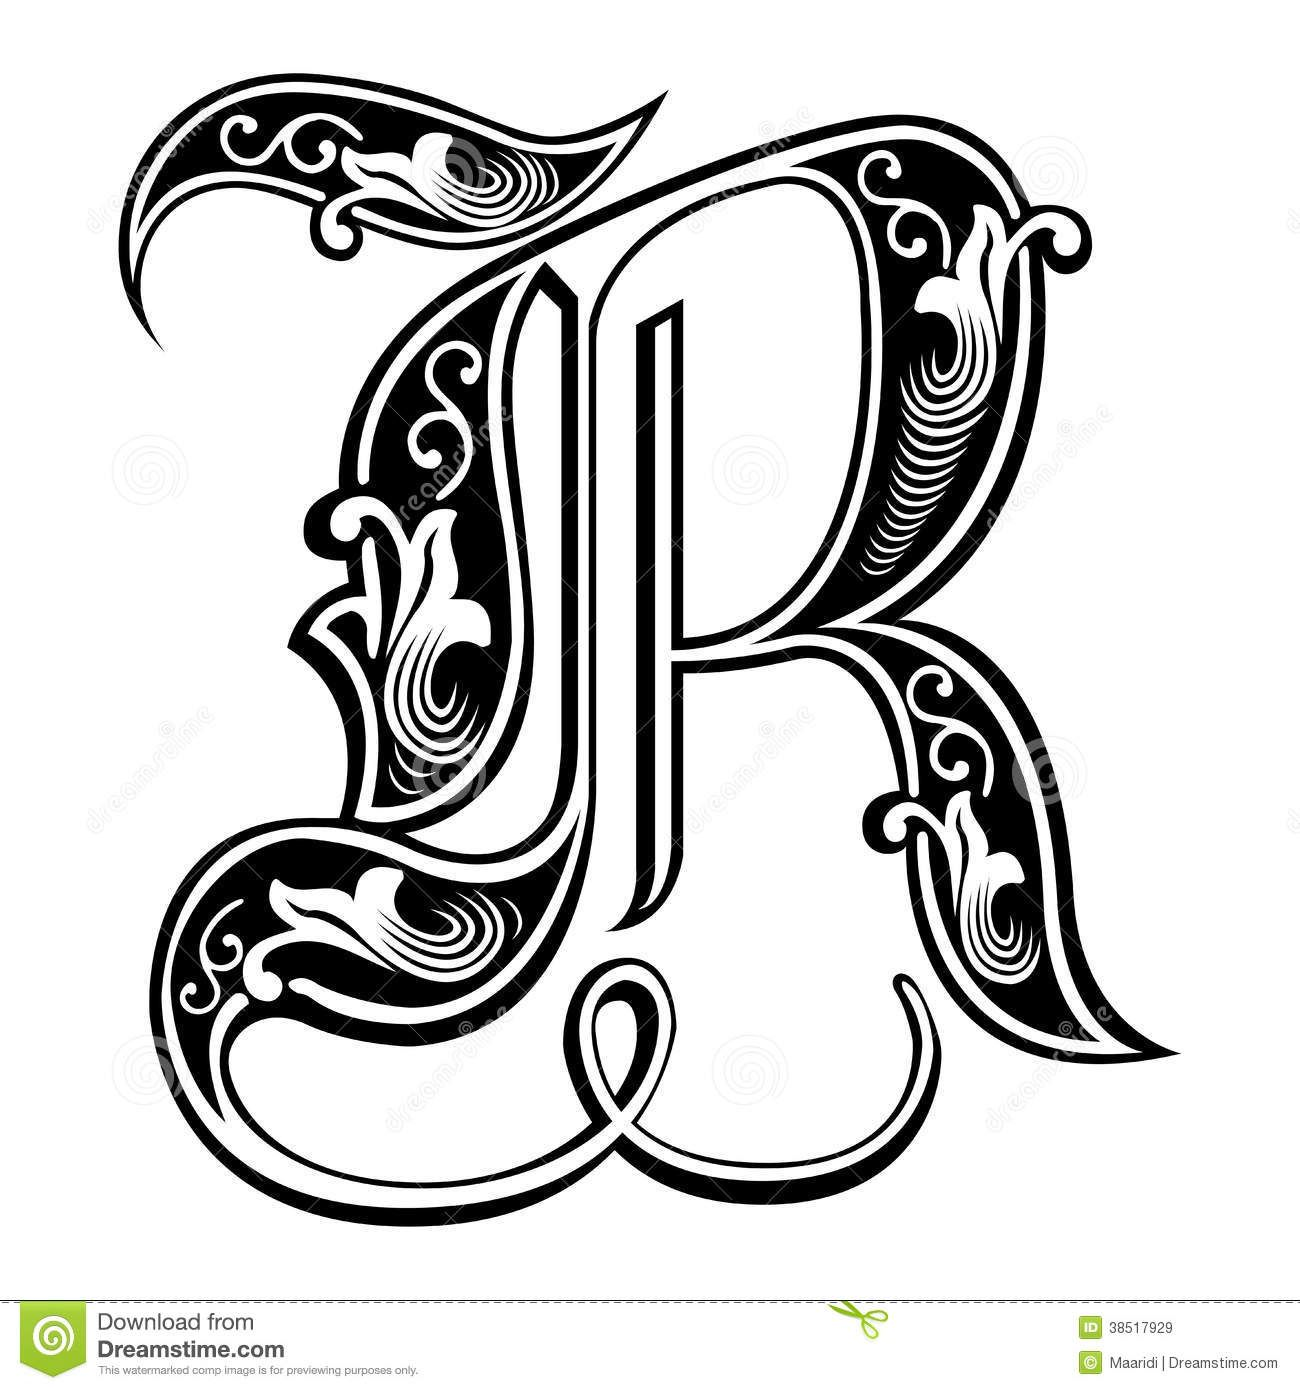 garnished gothic style font letter r download from over 55 million high quality stock photos. Black Bedroom Furniture Sets. Home Design Ideas